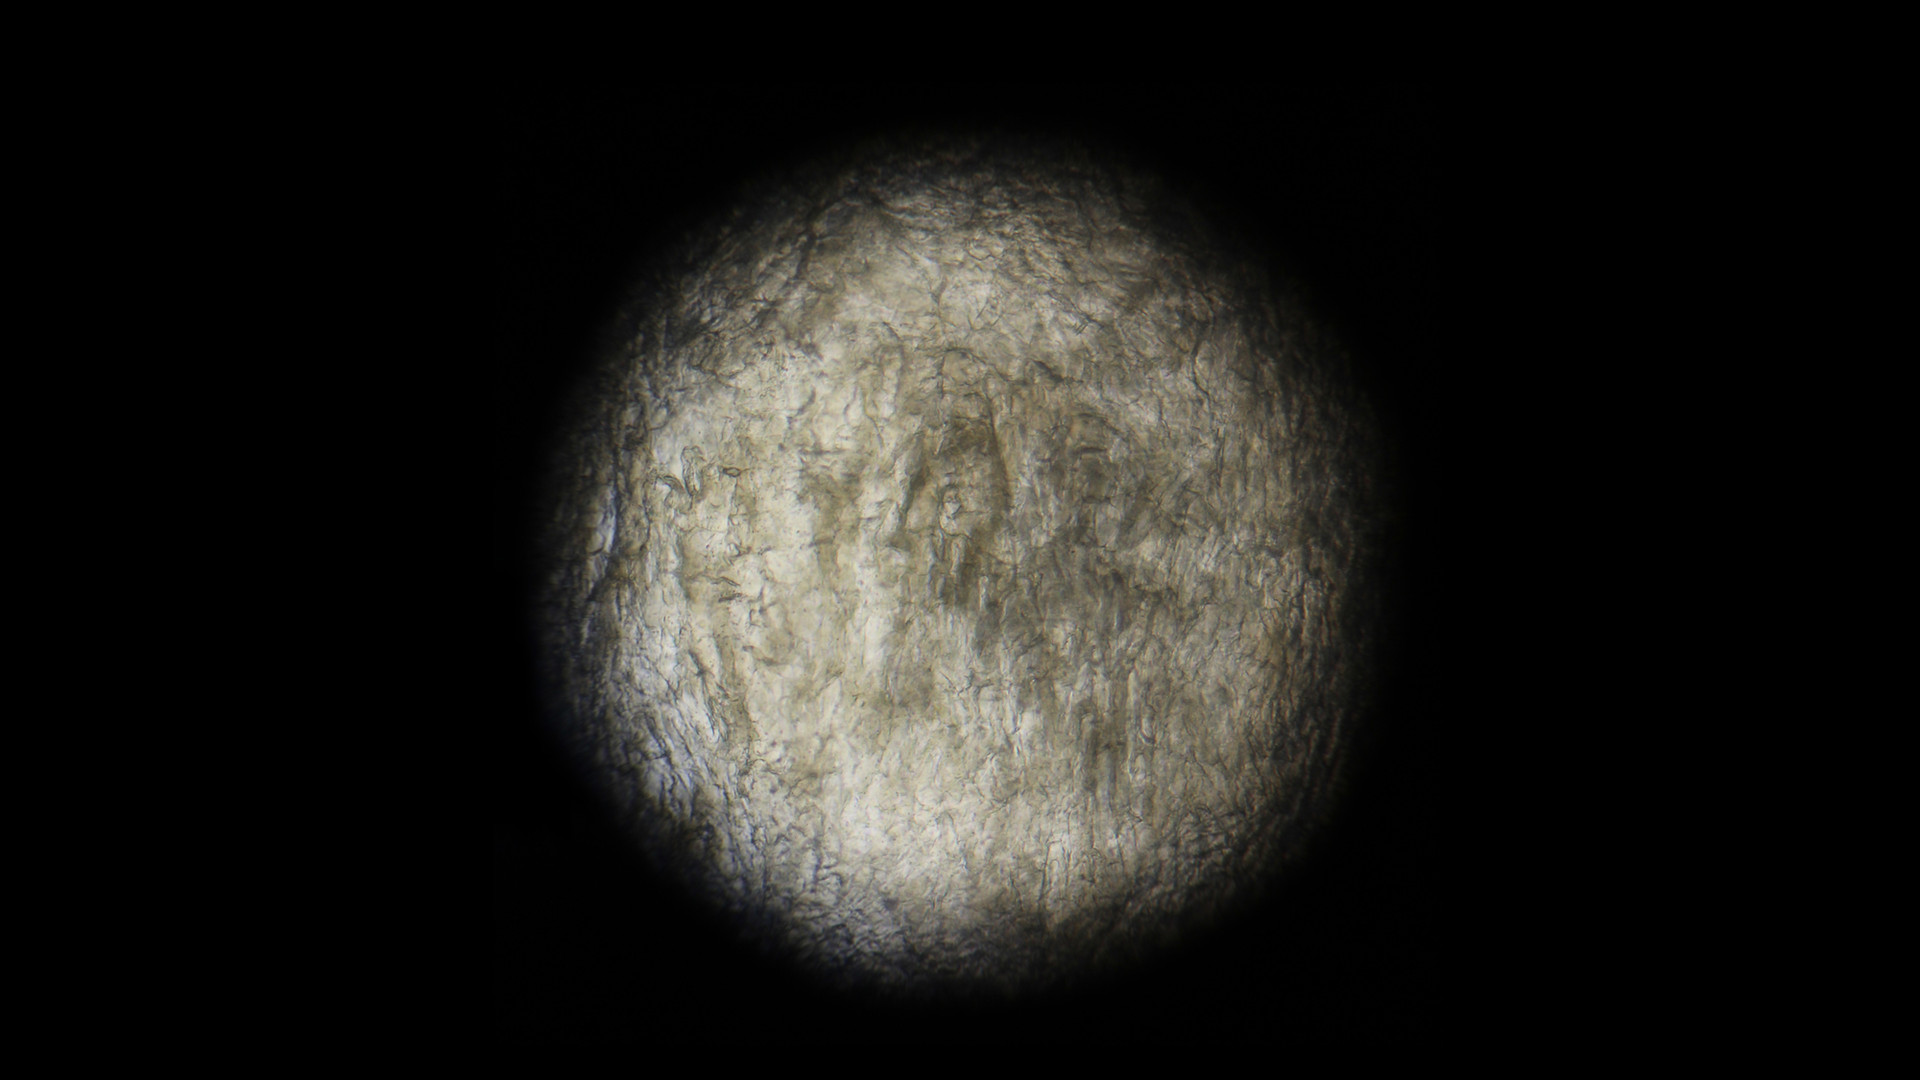 Over_the_Moon_#3,_2015,_photographie_num